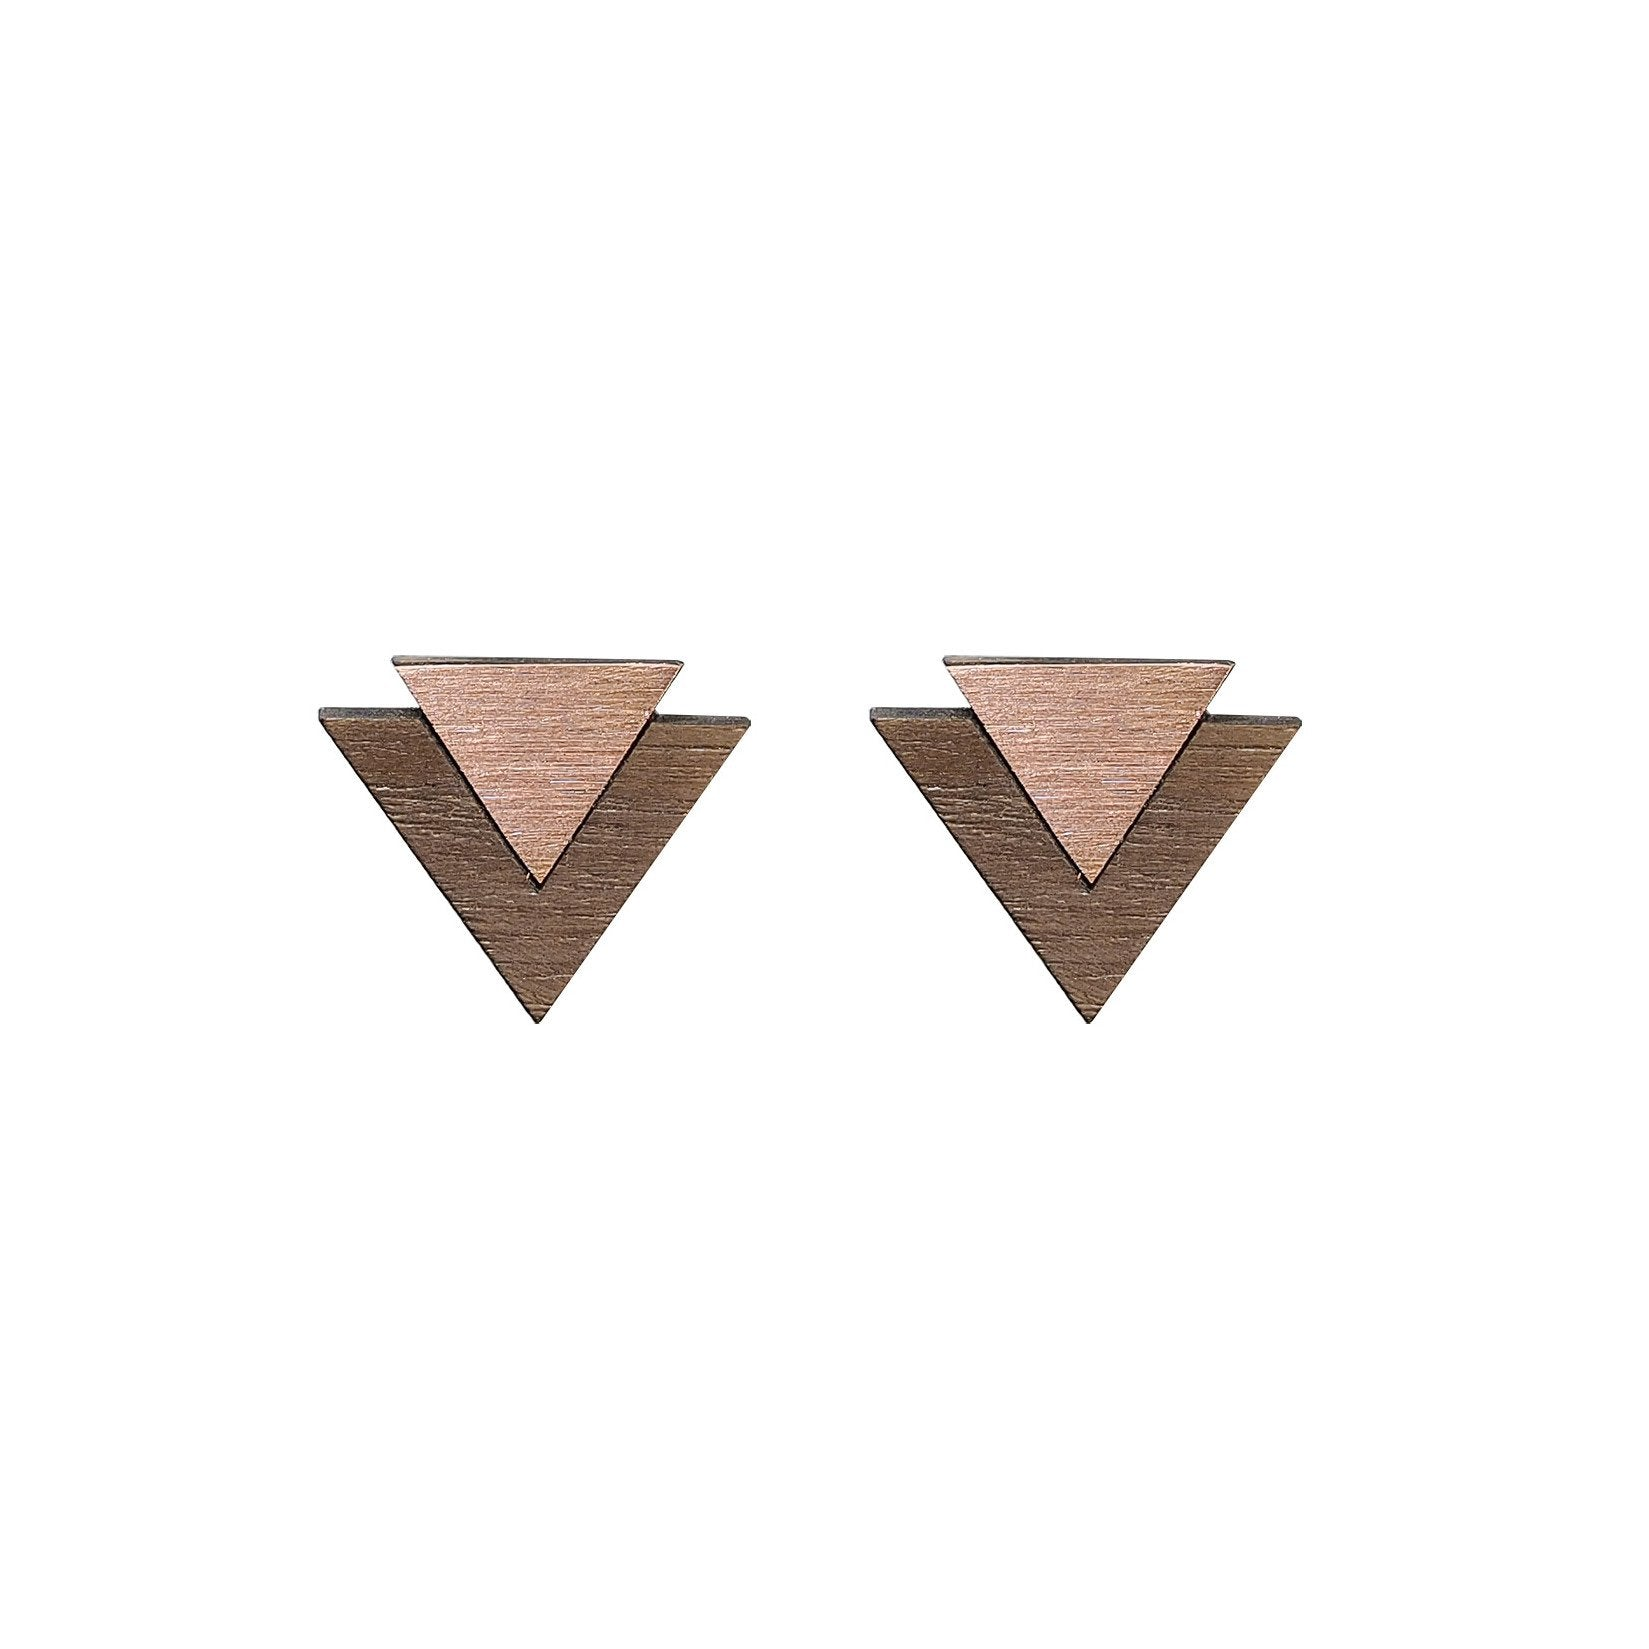 The Maisie - Copper Stud Earrings by form.london on OOSTOR.com